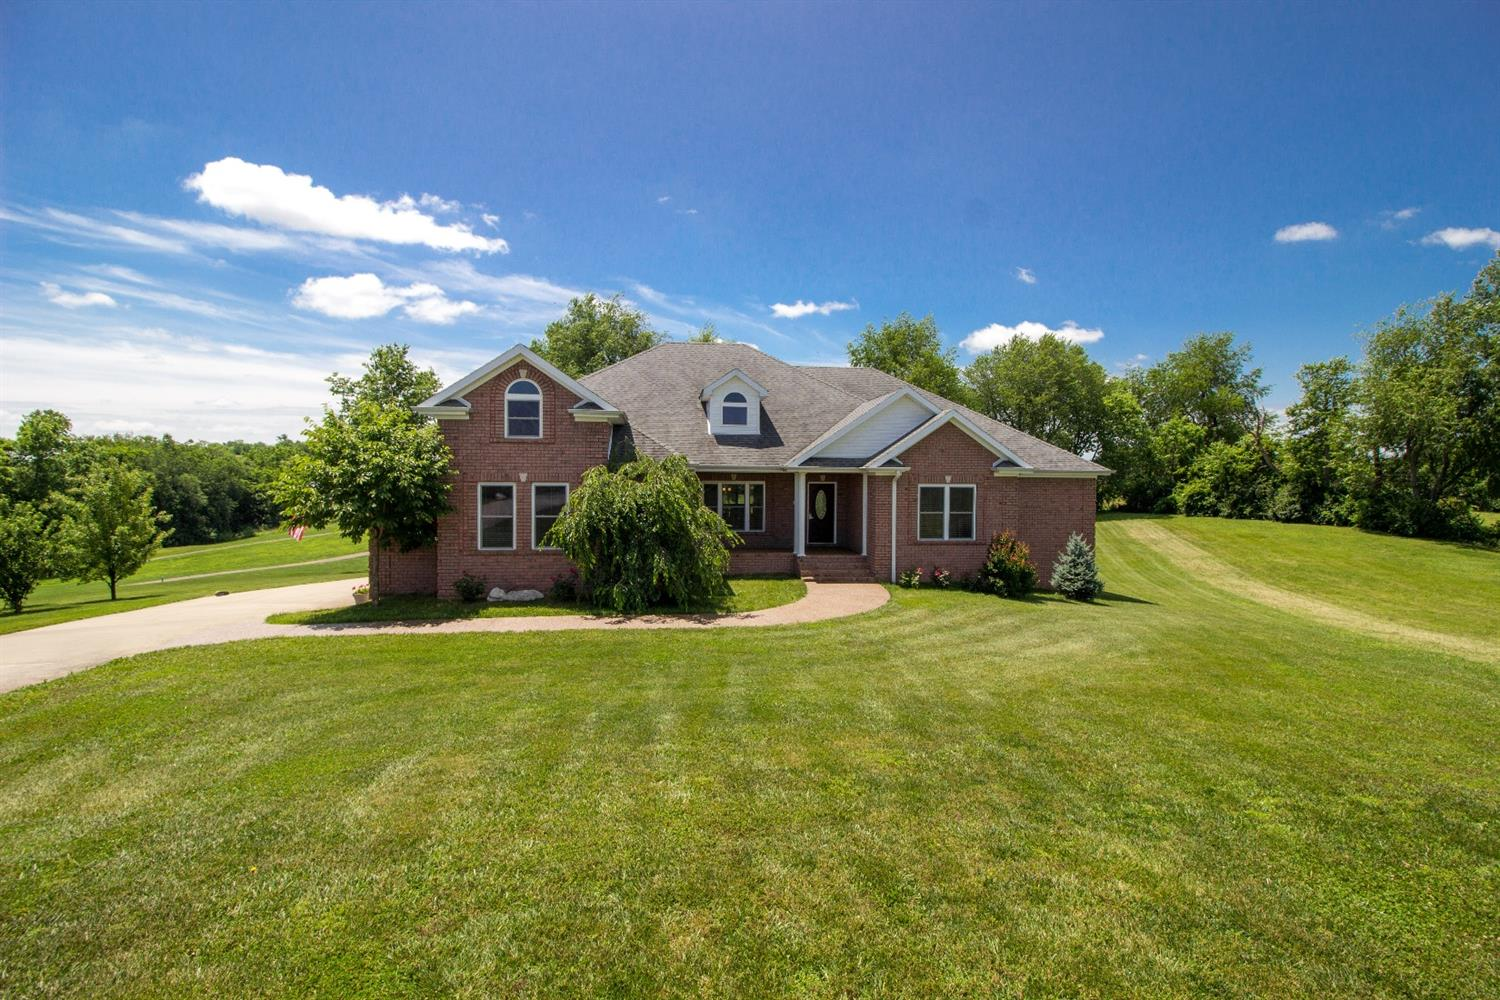 Home For Sale at 249 Bluffwood Dr, Danville, KY 40422